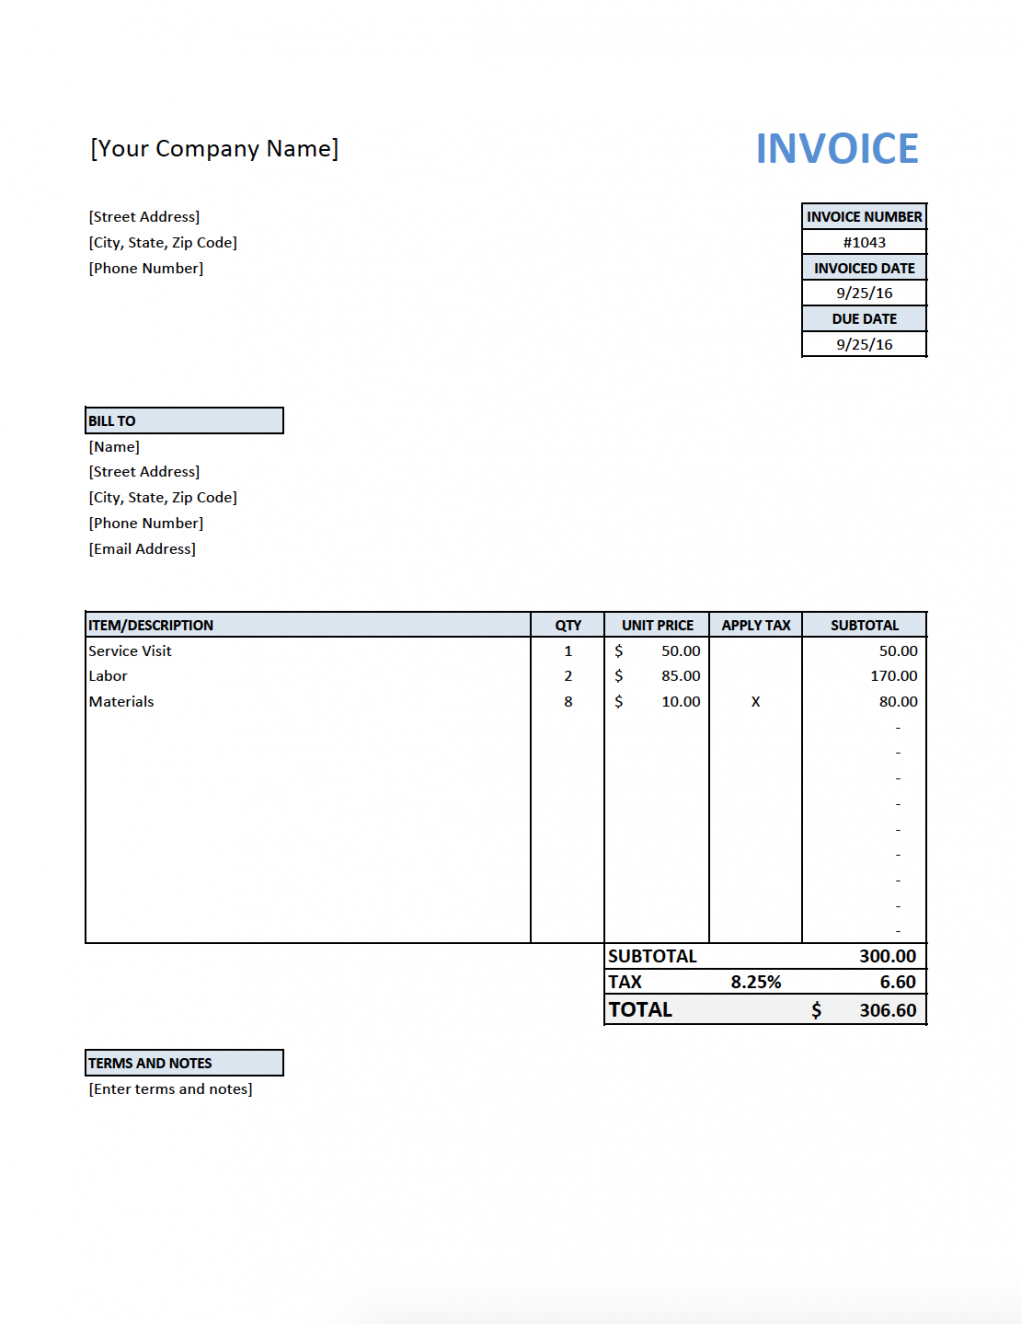 printable free invoice template for contractors #electrician sample plumbing invoice template pdf